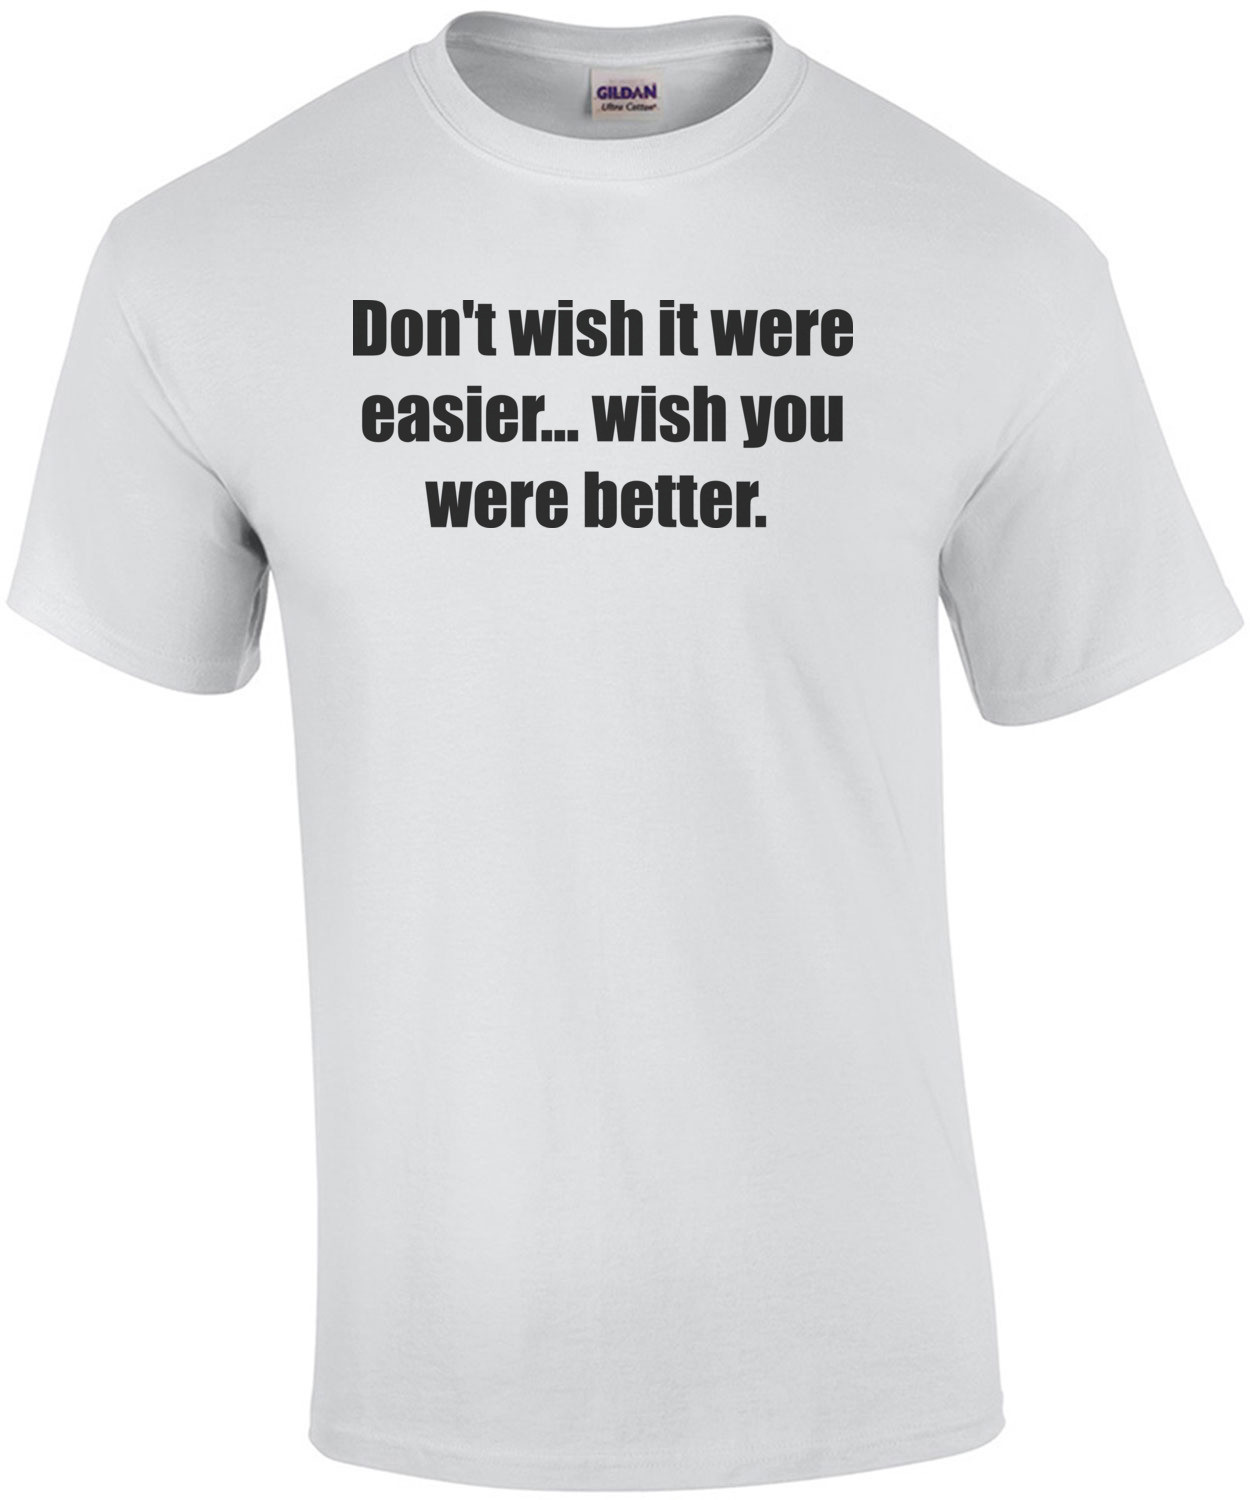 Don't wish it were easier... wish you were better. Crossfit saying Shirt